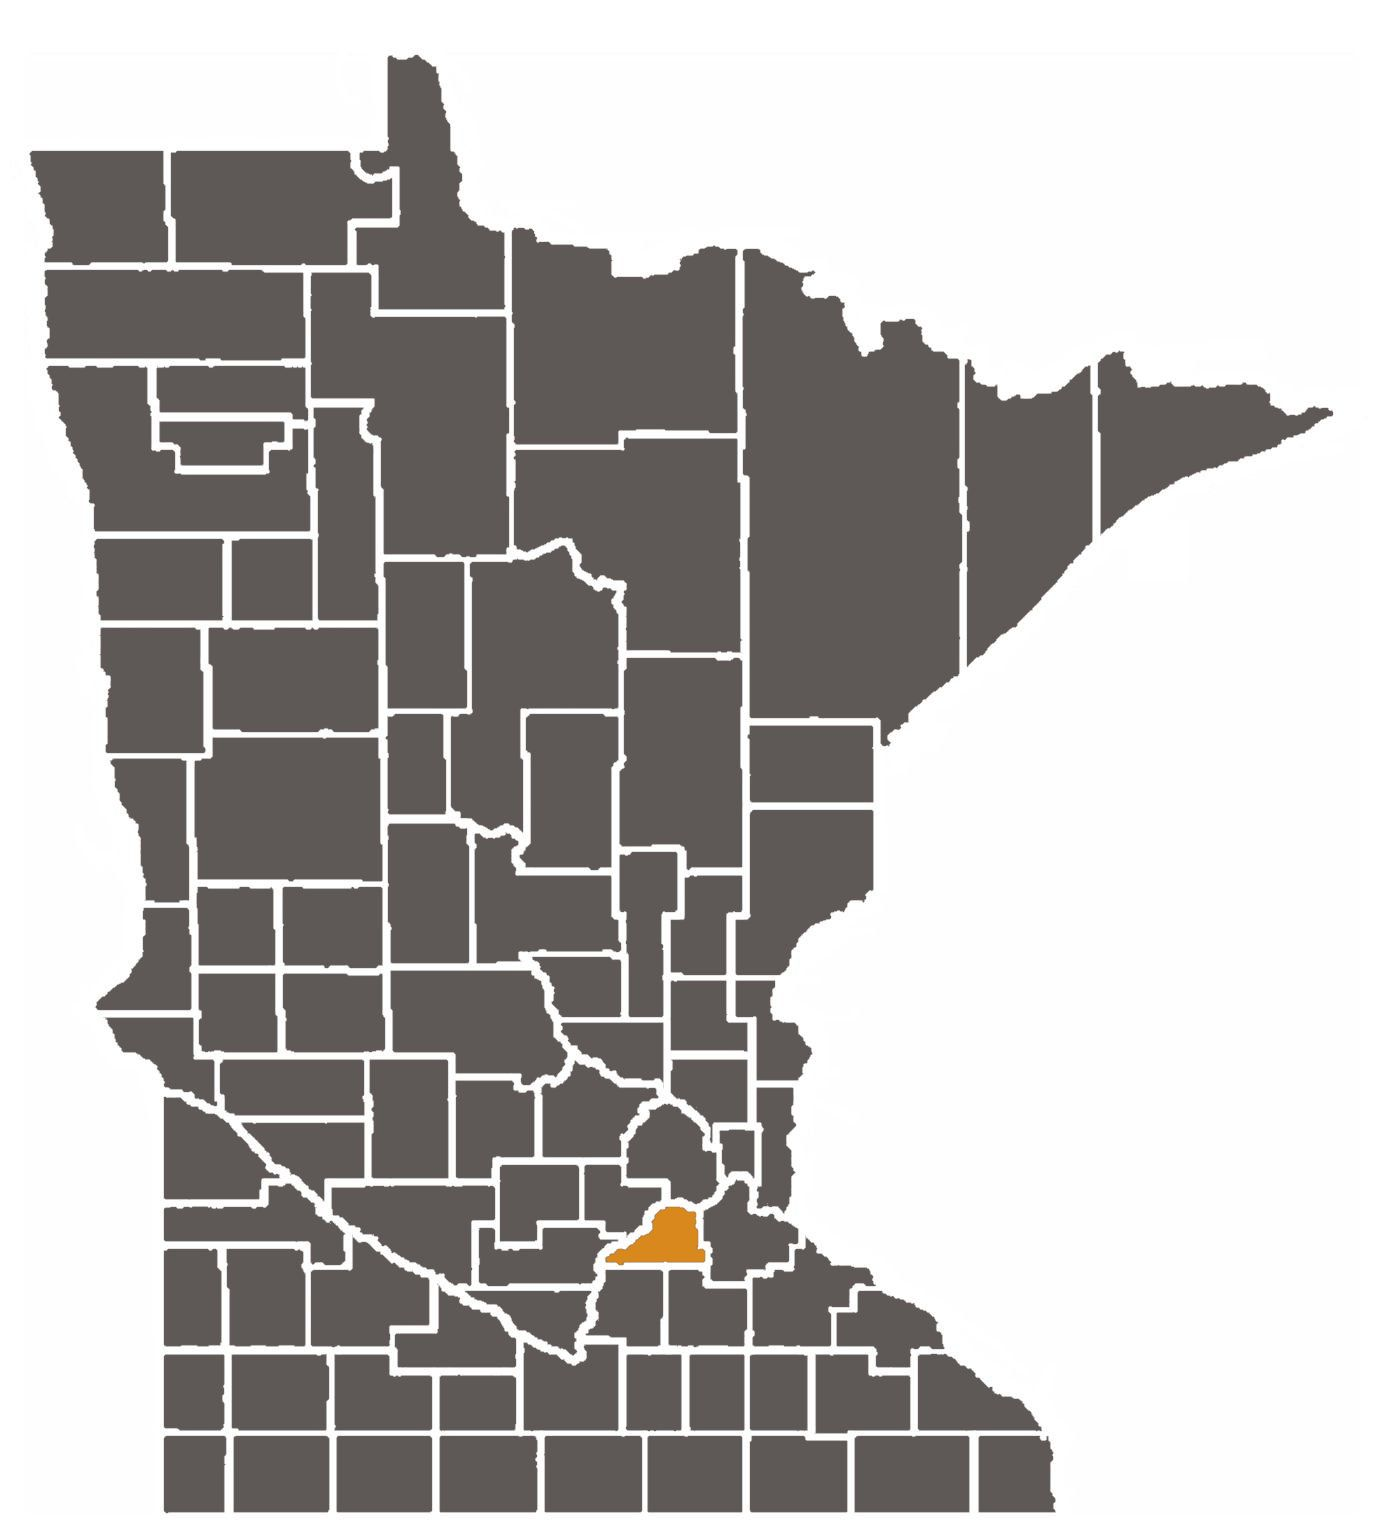 Minnesota map with Scott County highlighted.